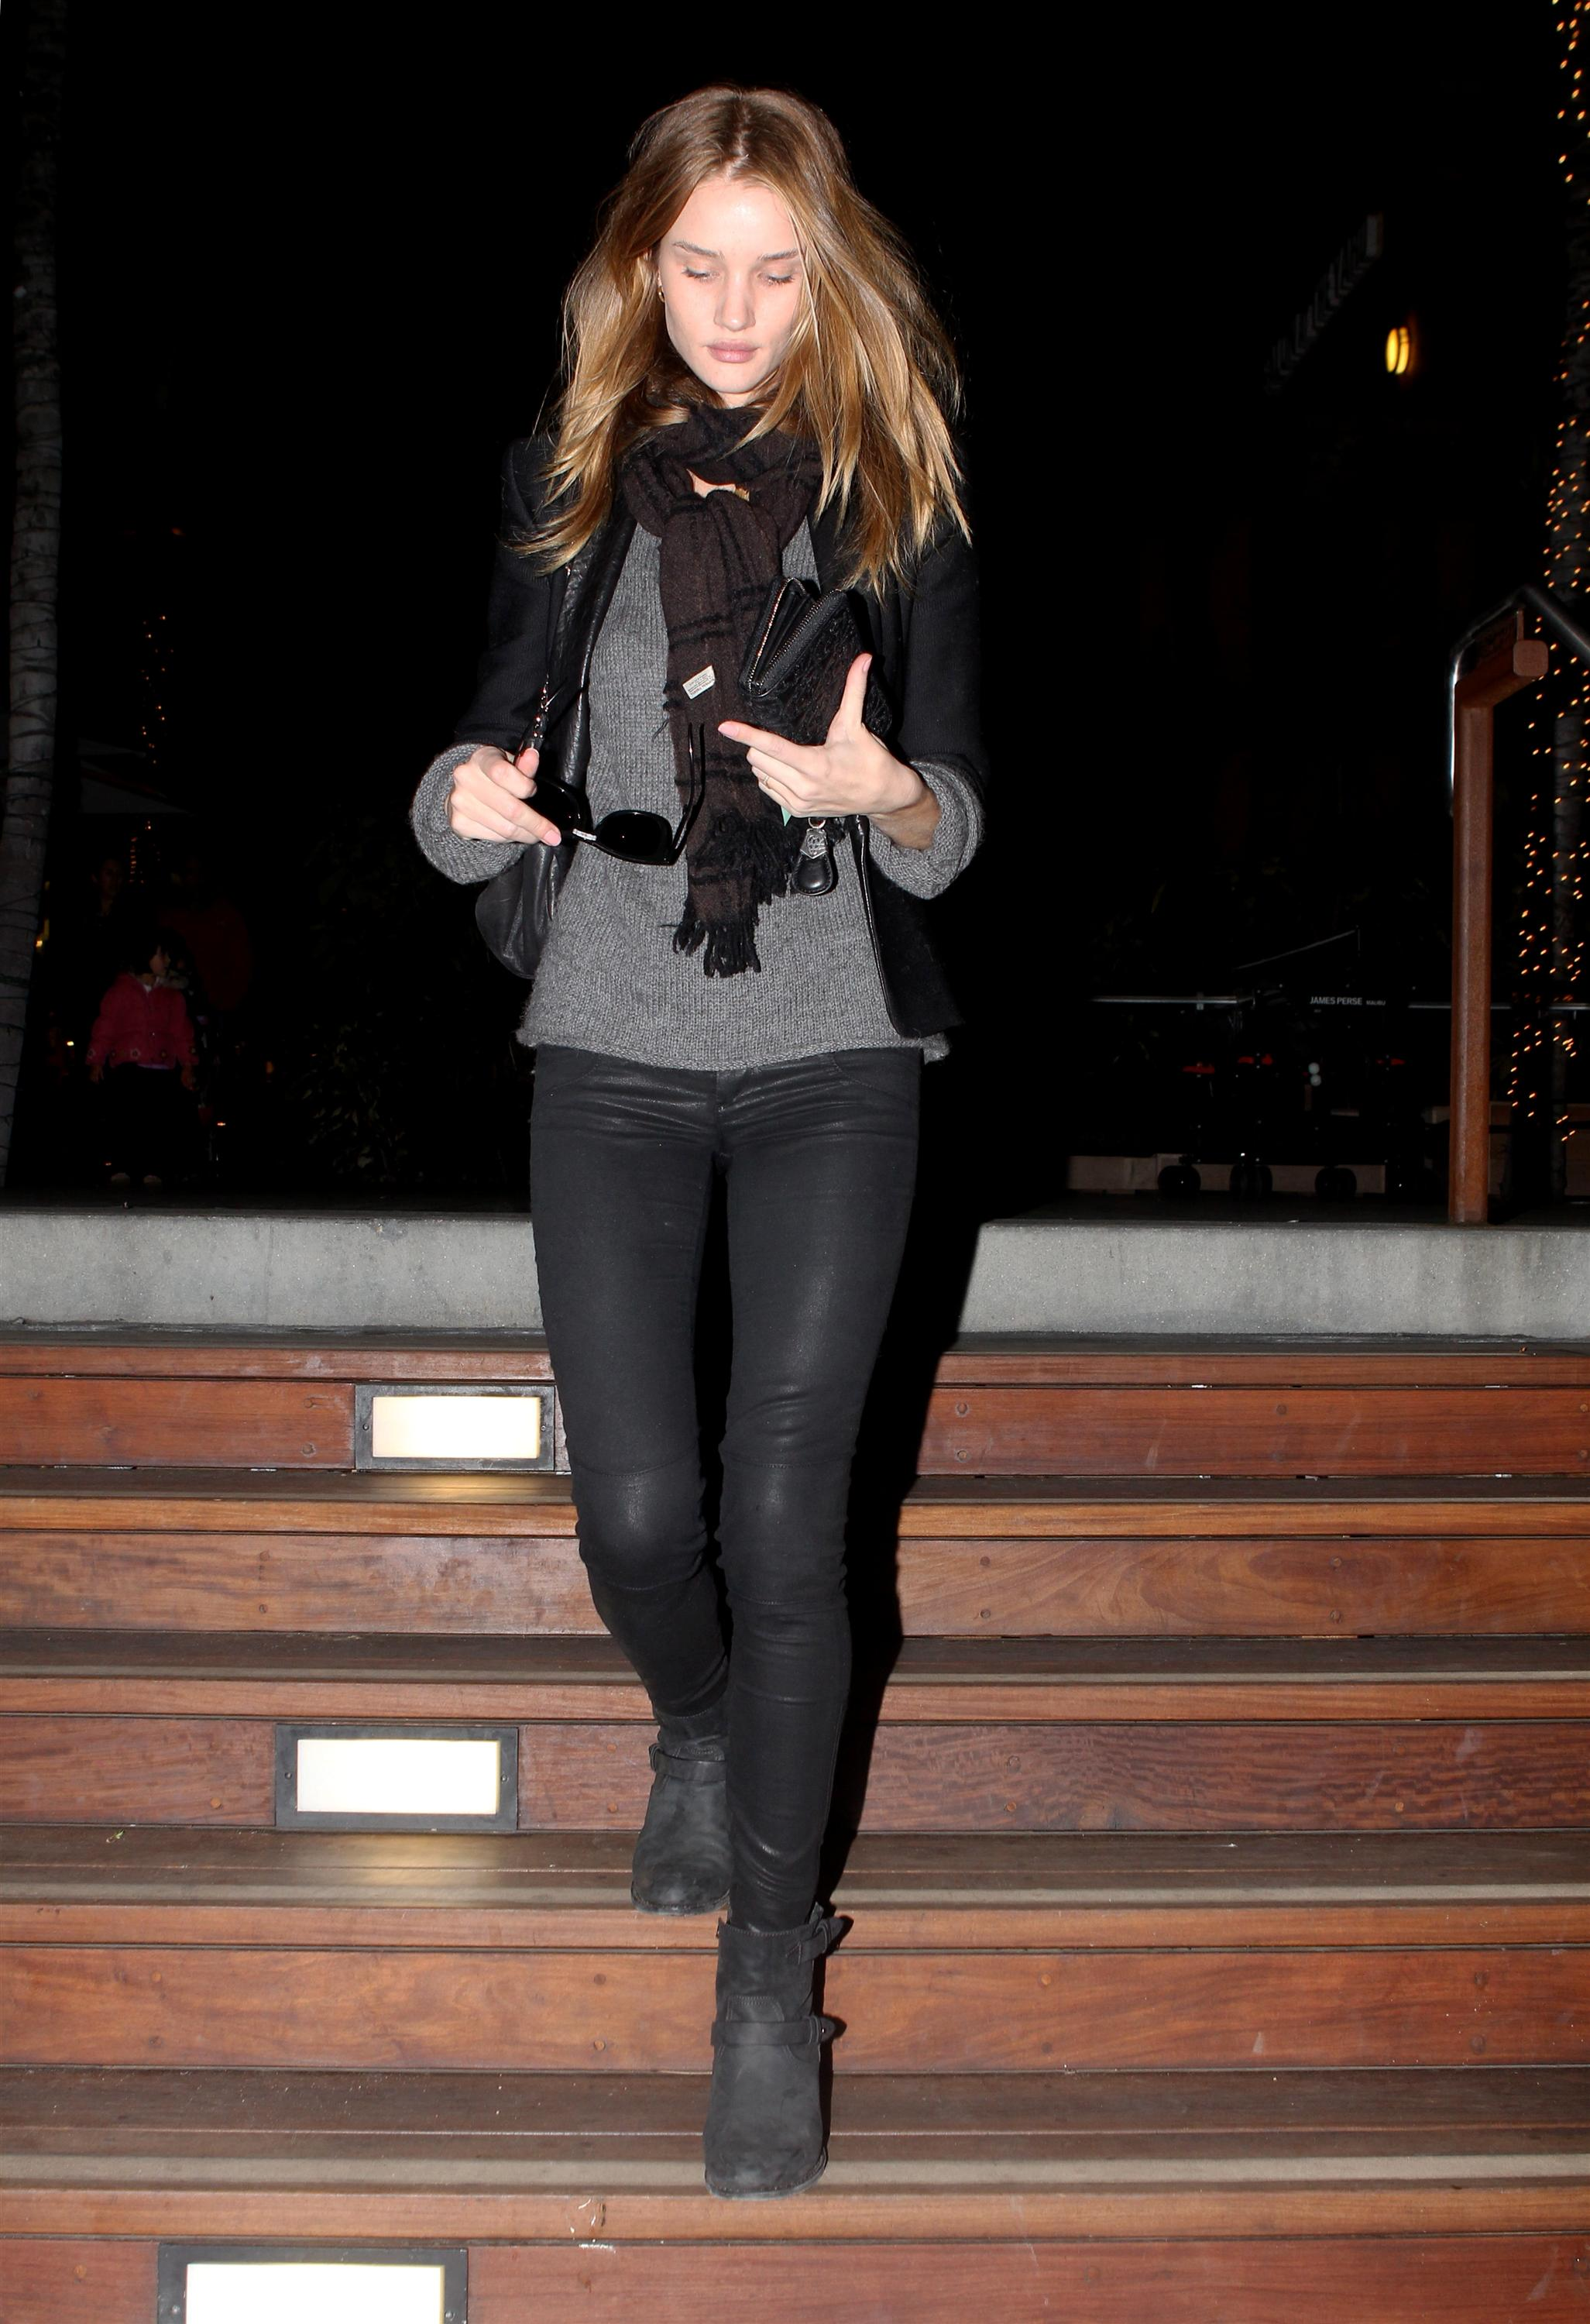 Rosie Huntington-Whiteley 18.12.2011 01b.jpg